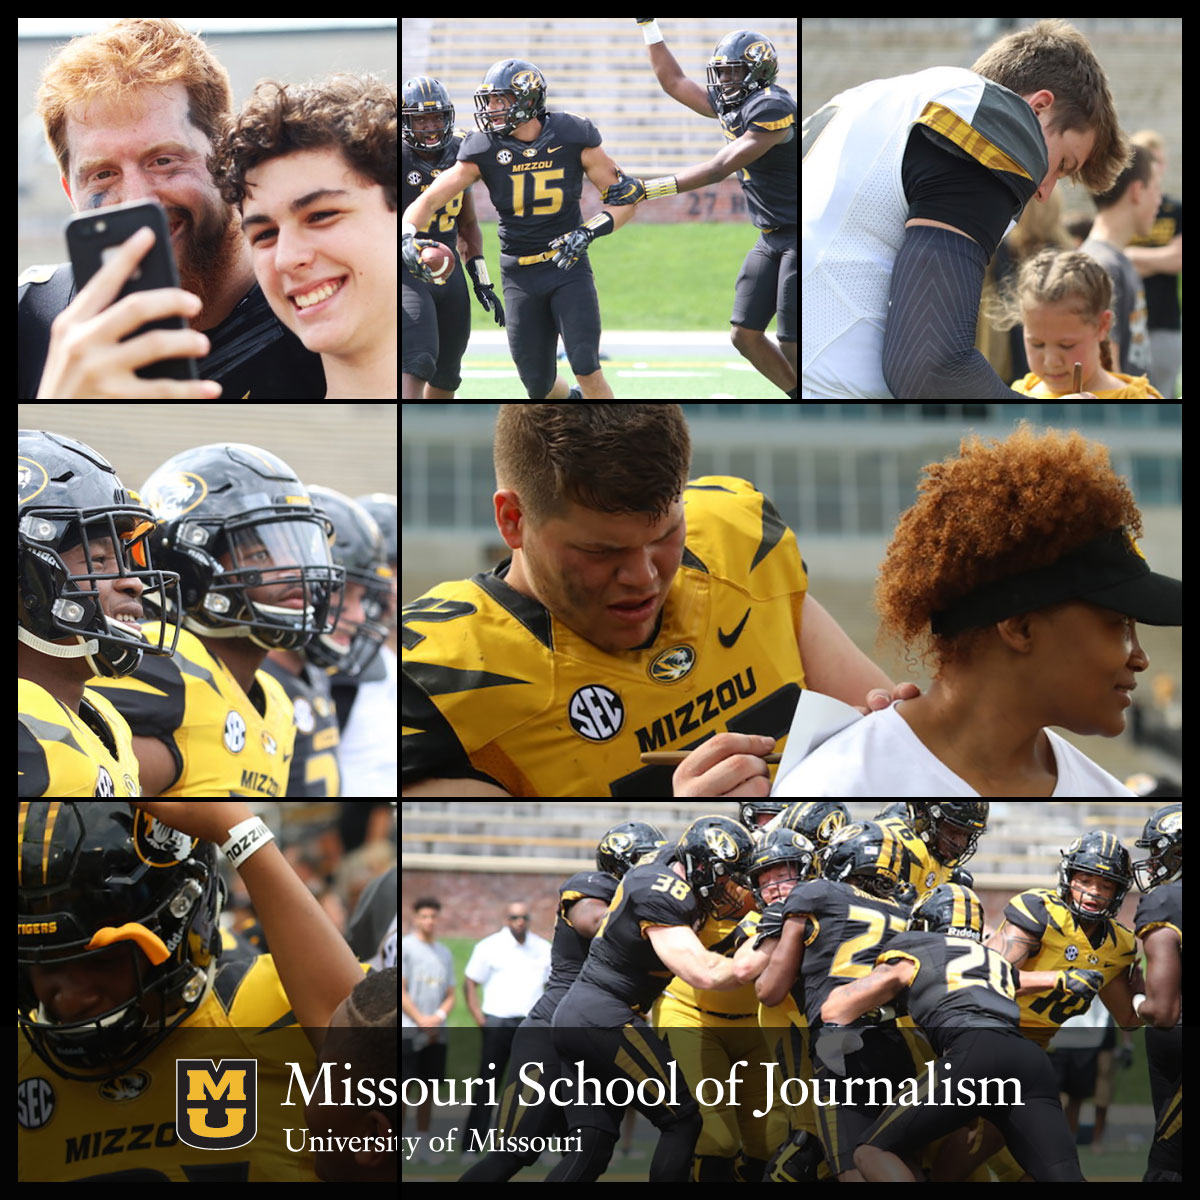 At the Missouri School of Journalism, students have many media outlets available to cover all aspects of sports. (Photos: Lexi Churchill.)